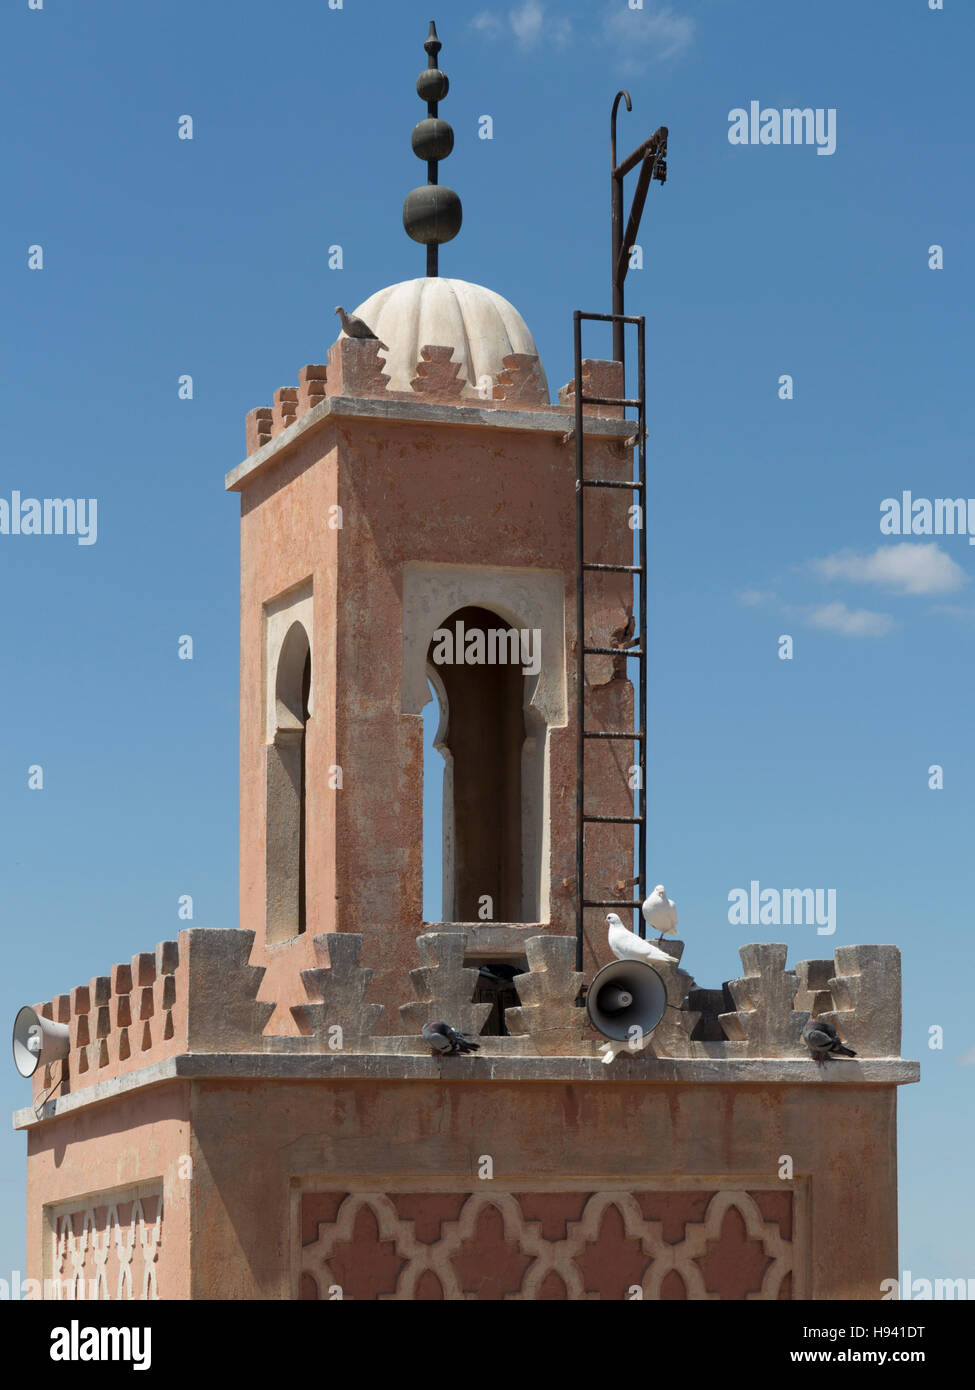 Minaret of a mosque in Marakech, Morocco, North Africa - Stock Image